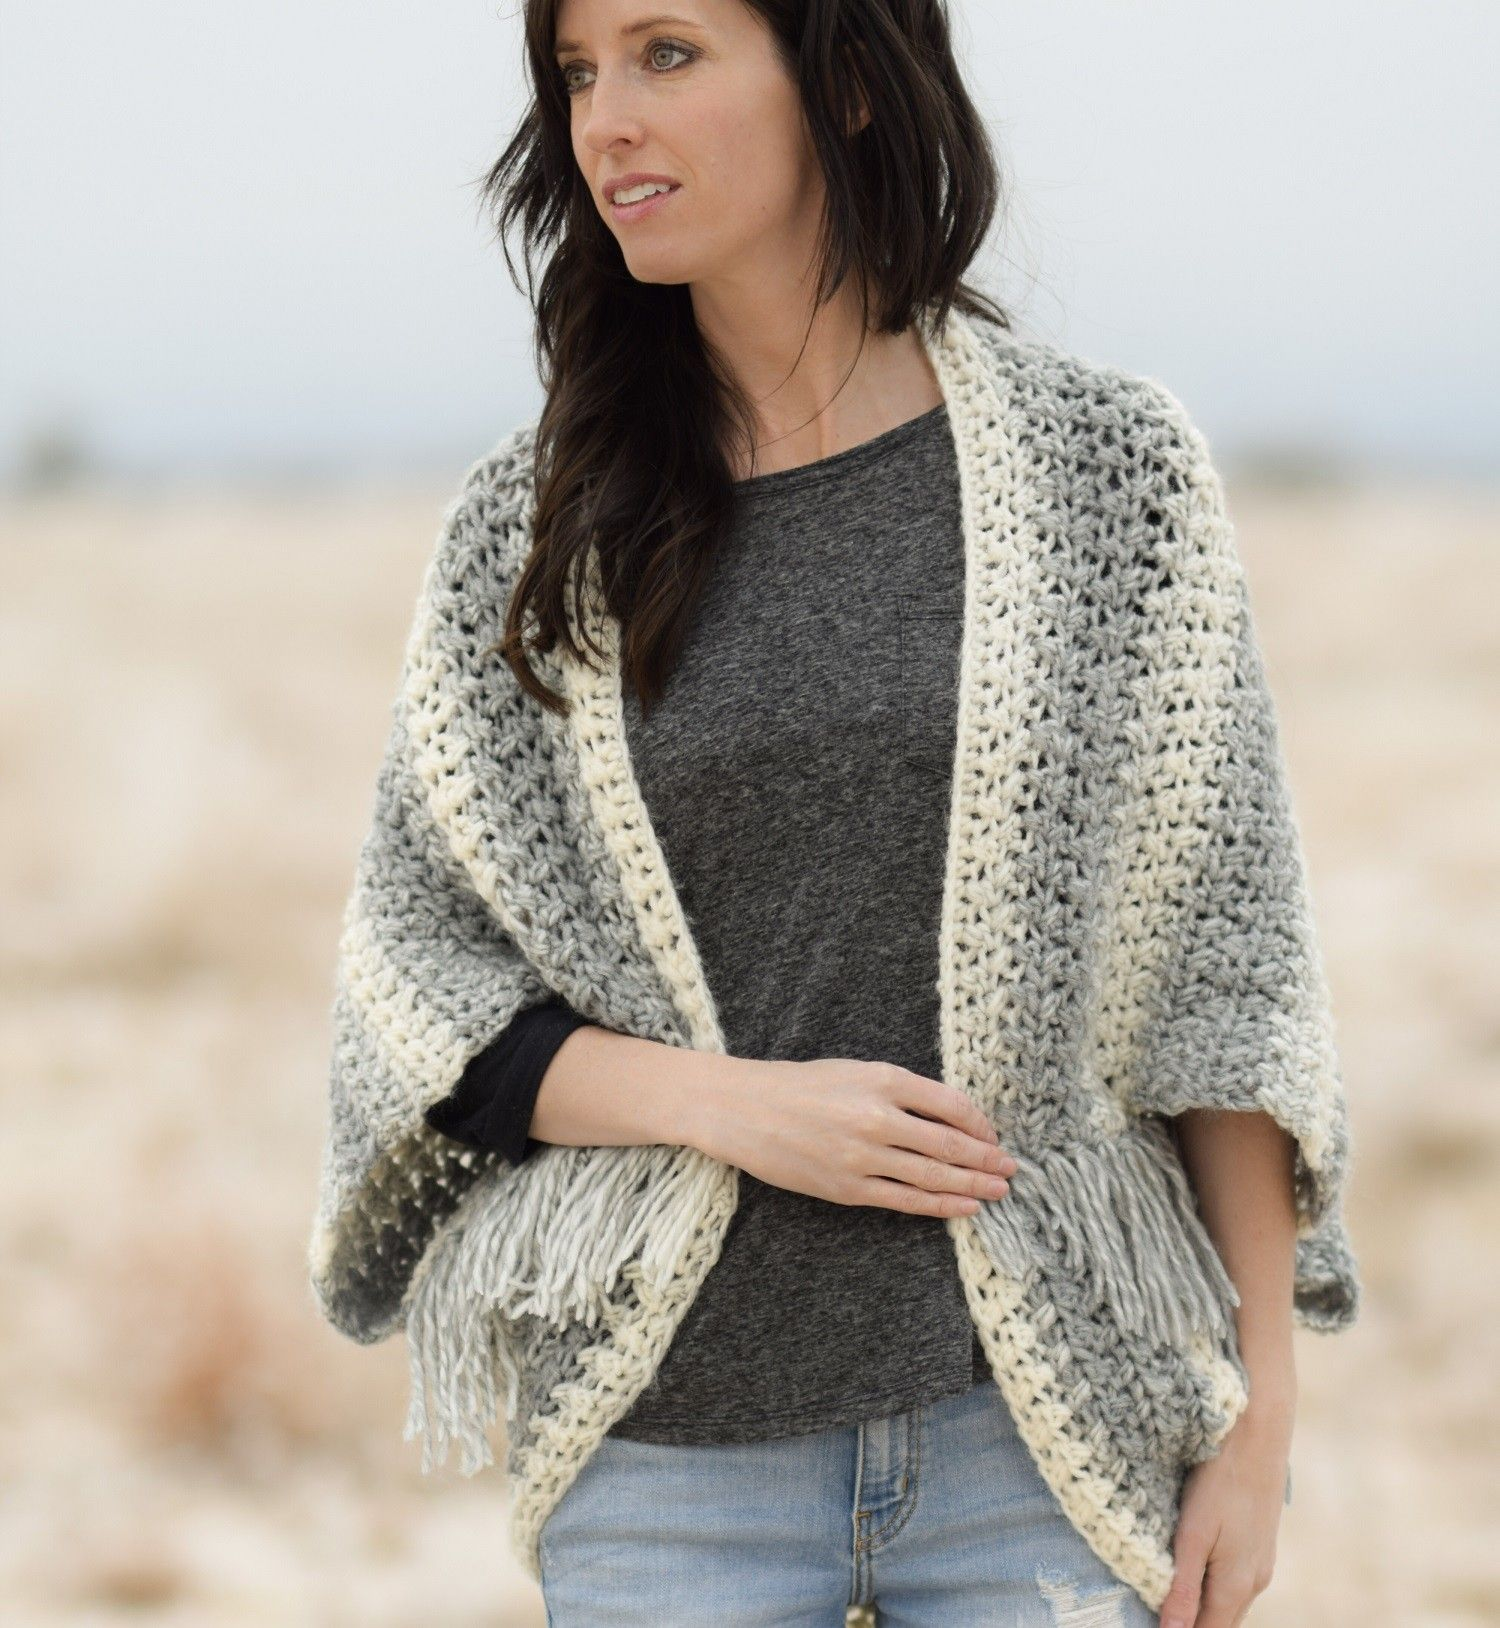 Crochet Kit - Light Frost Easy Blanket Sweater #blanketsweater